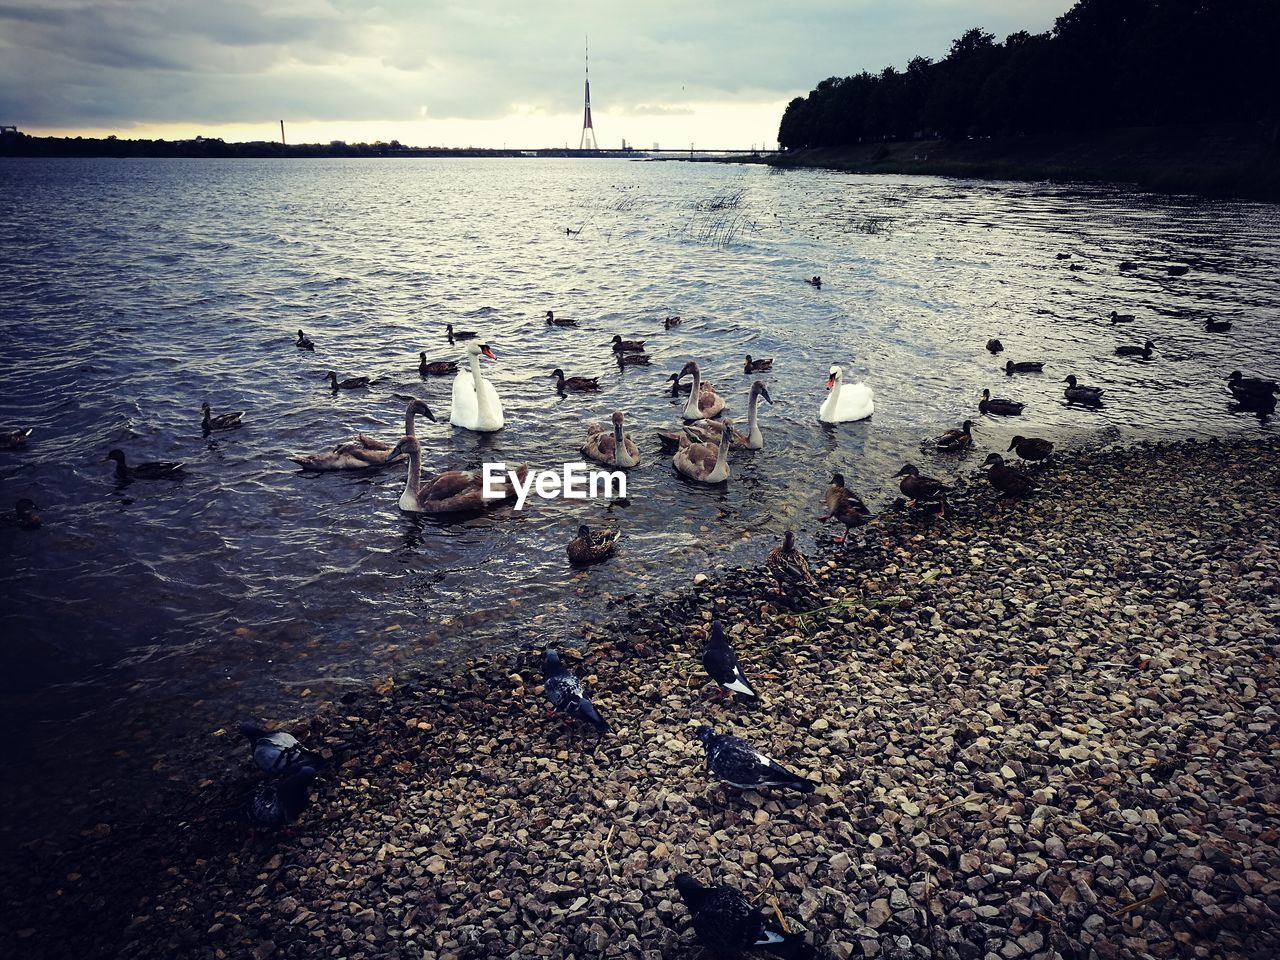 nature, water, beauty in nature, lake, tranquility, no people, beach, sky, outdoors, large group of animals, scenics, day, animal themes, swan, pebble beach